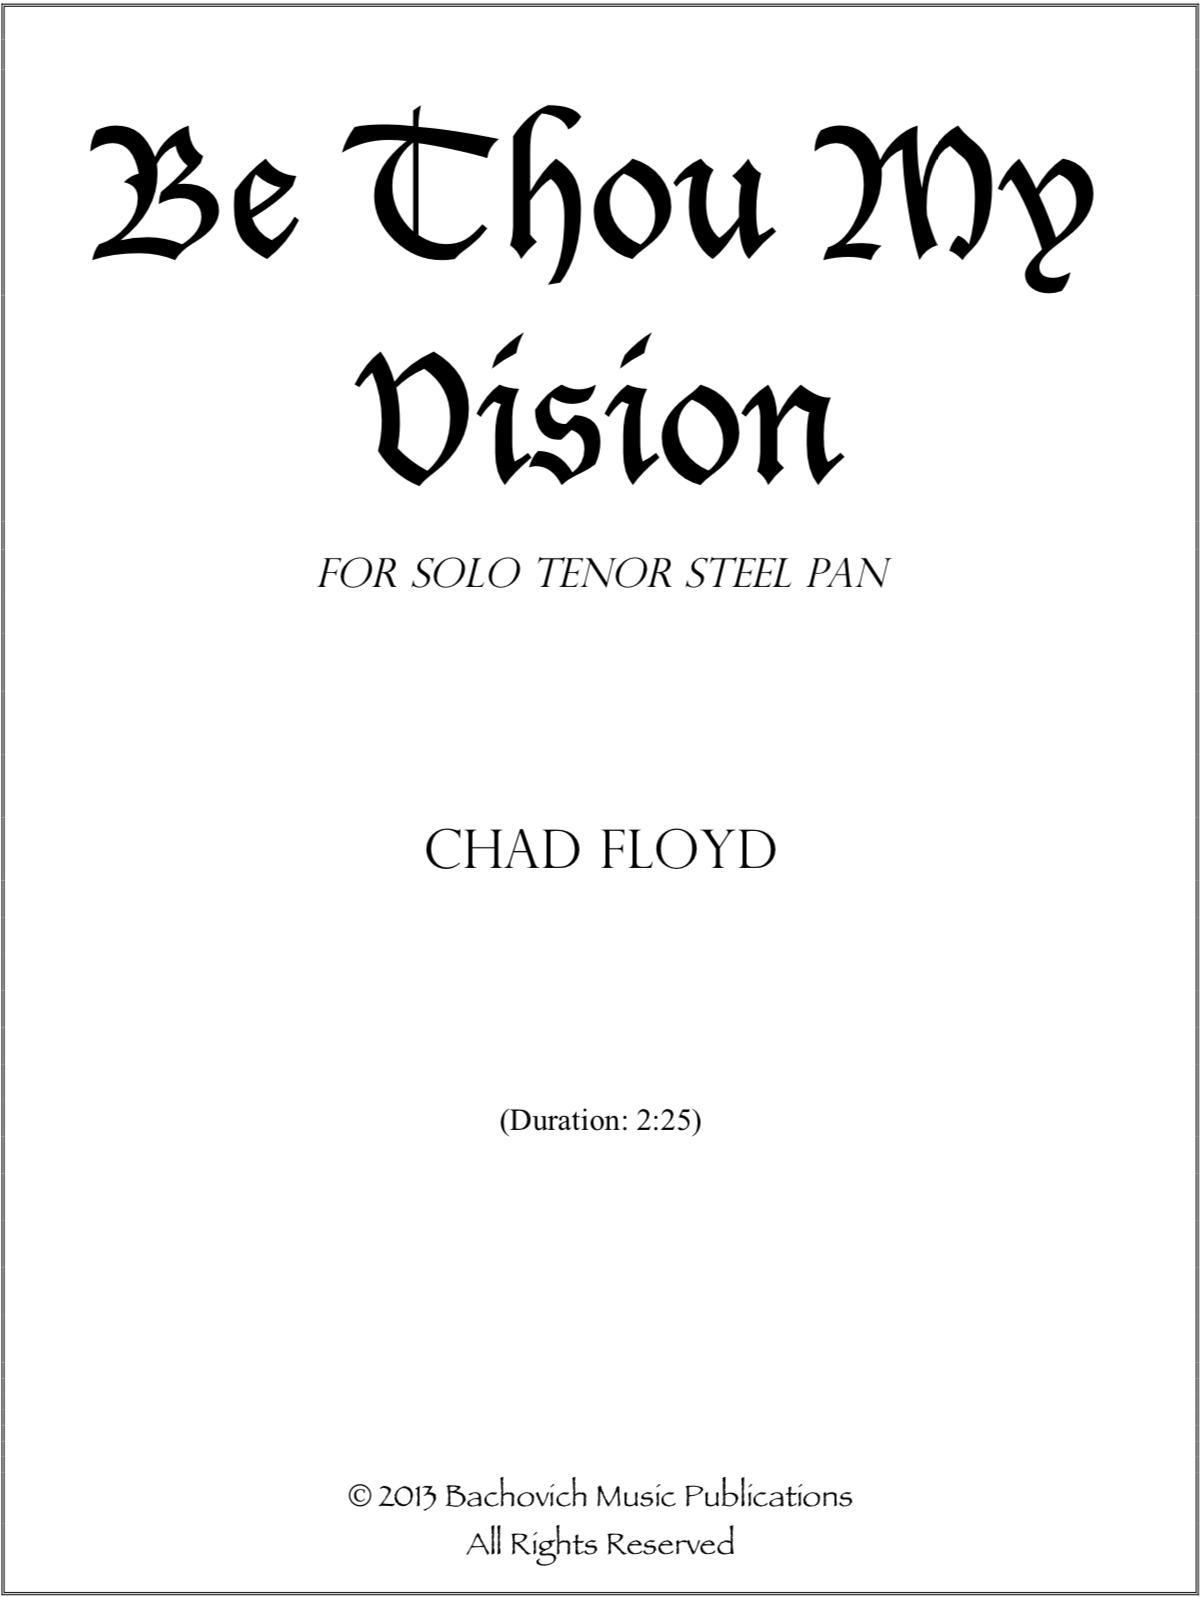 Be Thou My Vision Chords Be Thou My Vision Chad Floyd